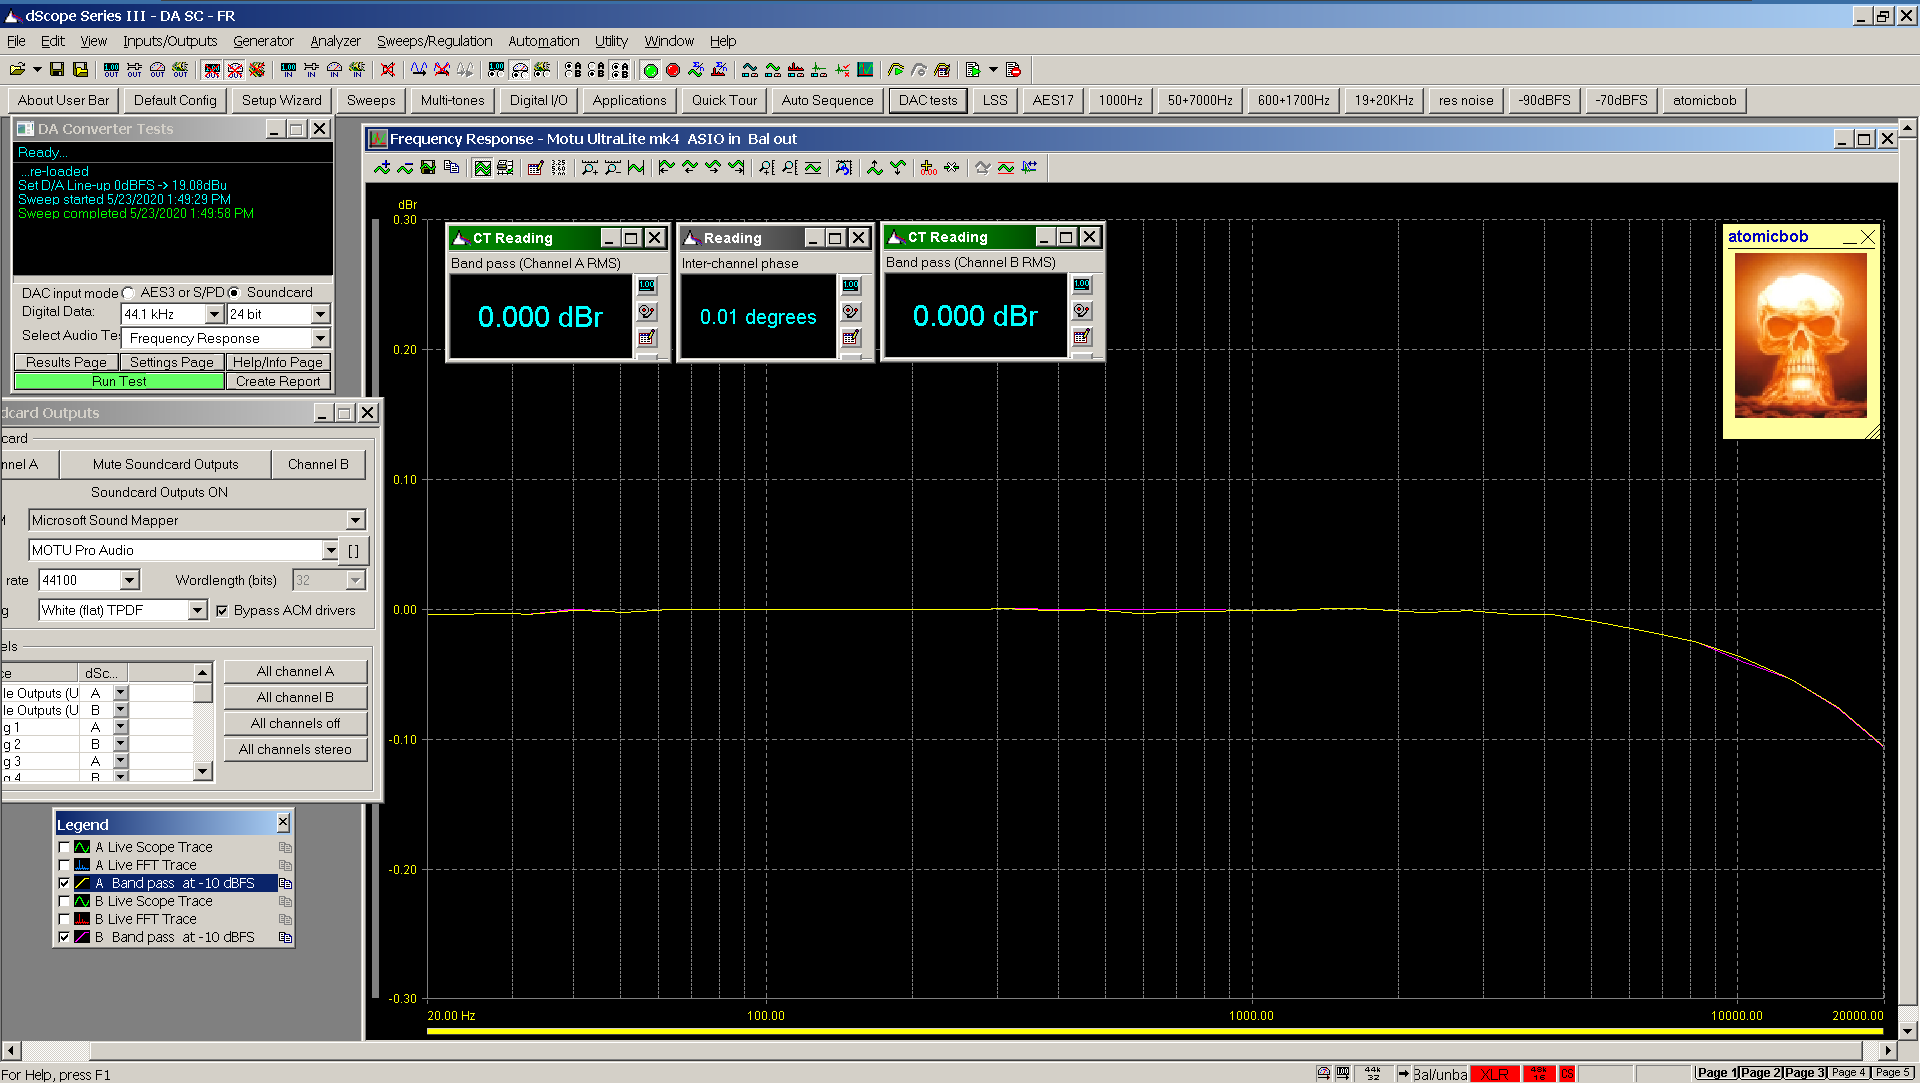 20200523-05 UltraLite-mk4 frequency response zoom FFT ASIO Bal.png